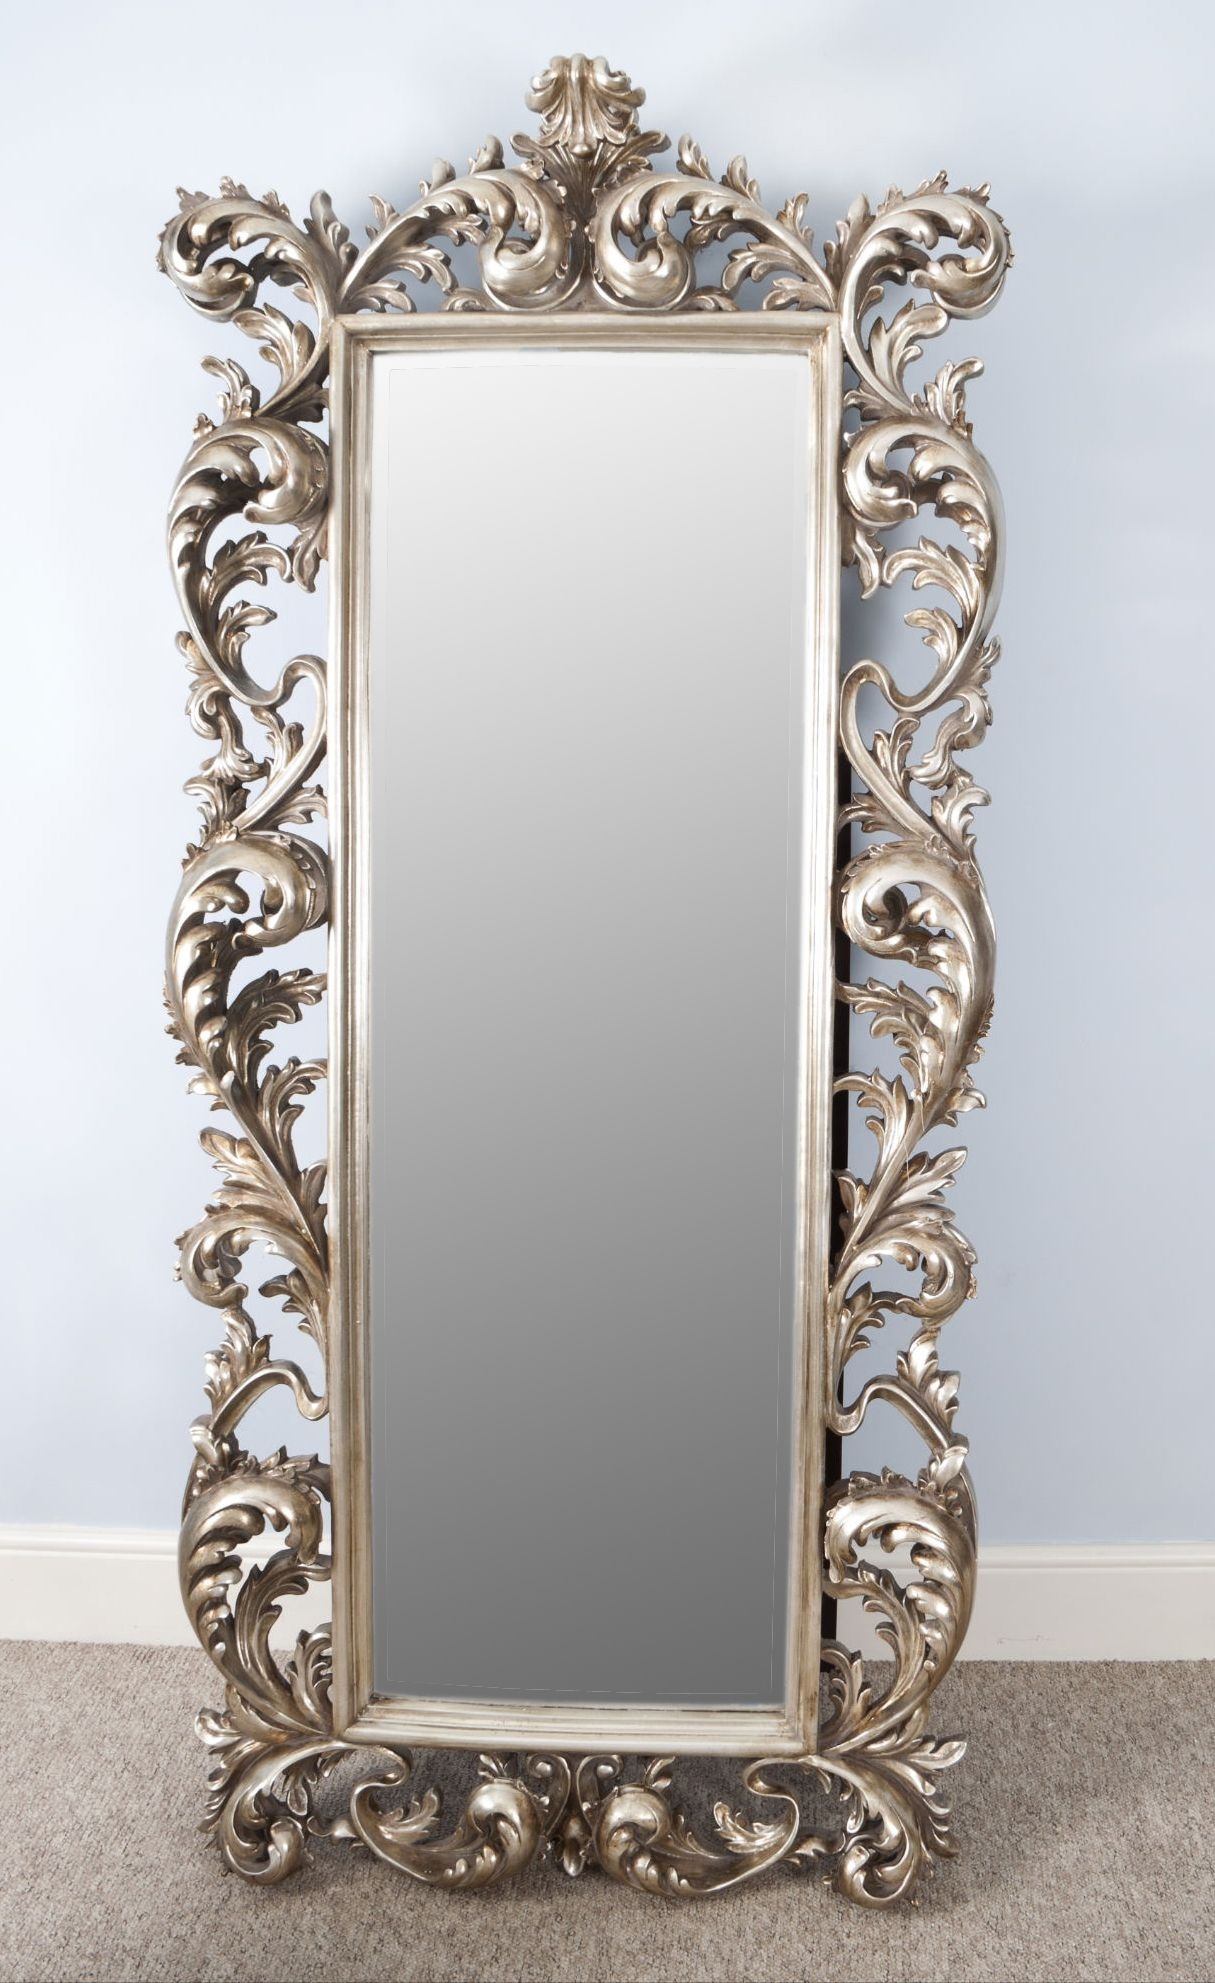 Wondrous Old Oval Mirror Antique Cheval Wall Mirror Likewise Grey In Antique Looking Mirrors For Sale (Image 15 of 15)